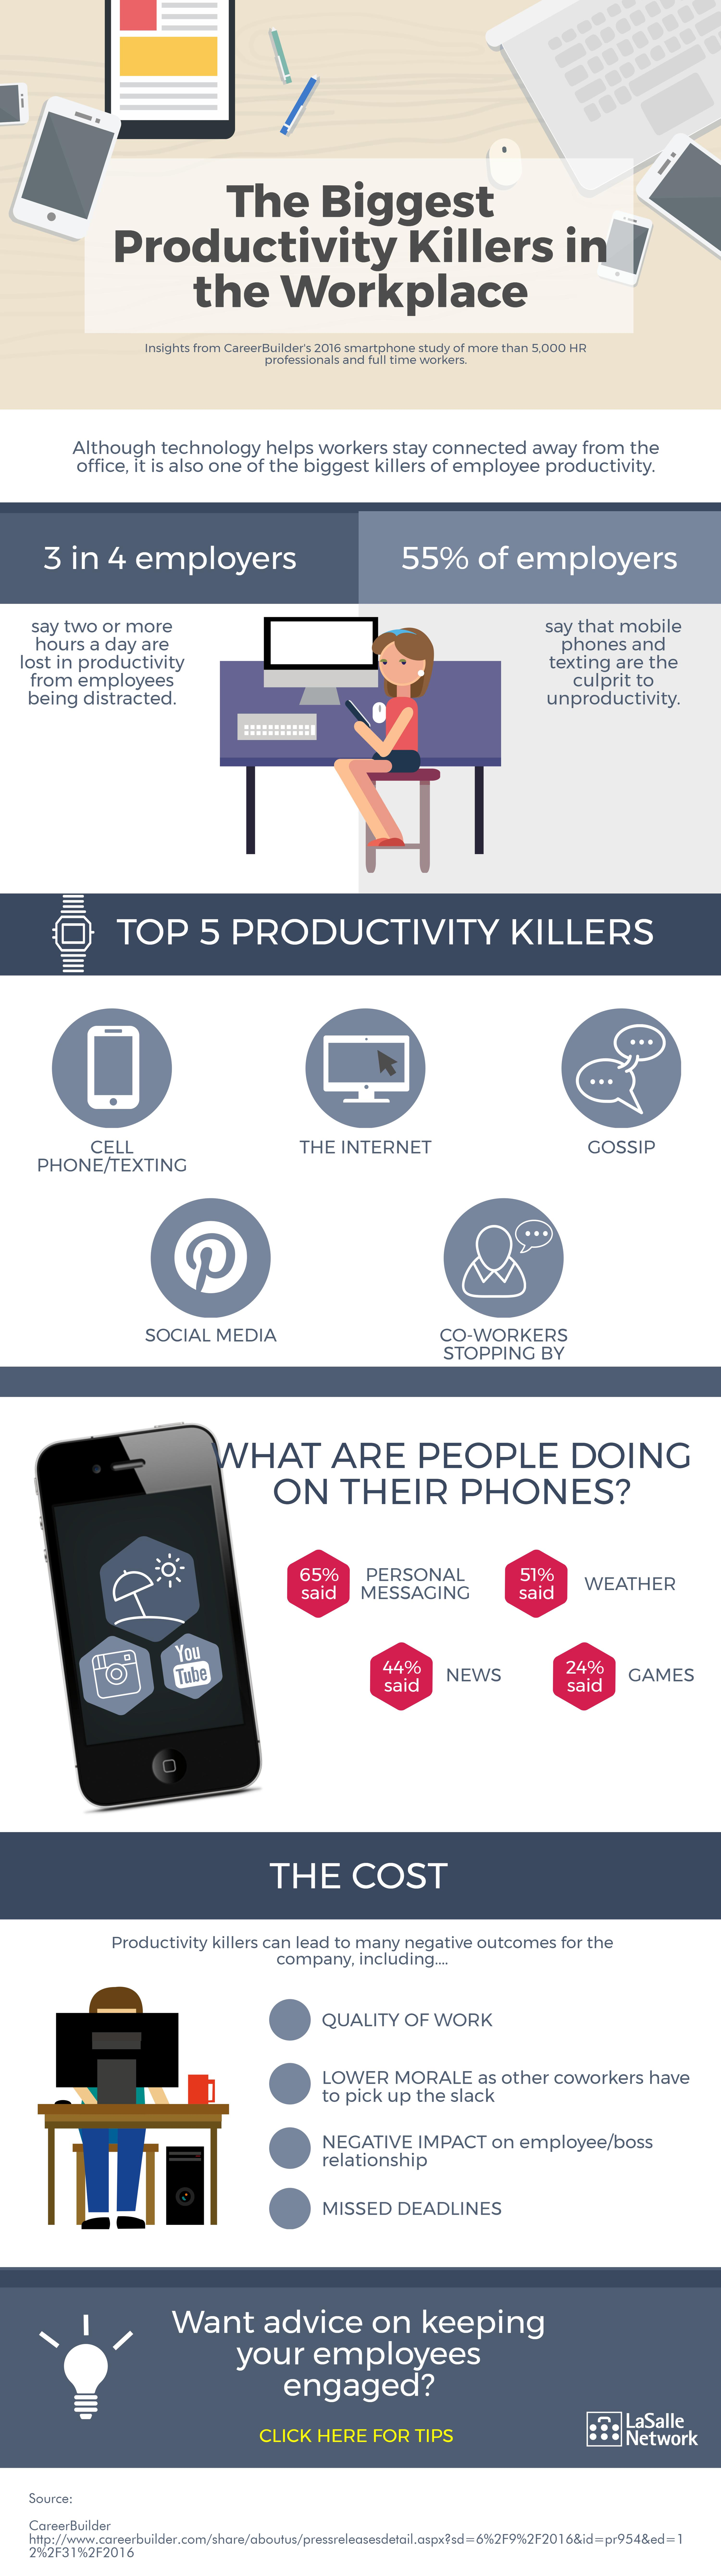 The biggest productivity killers in the workplace INFOGRAPHIC